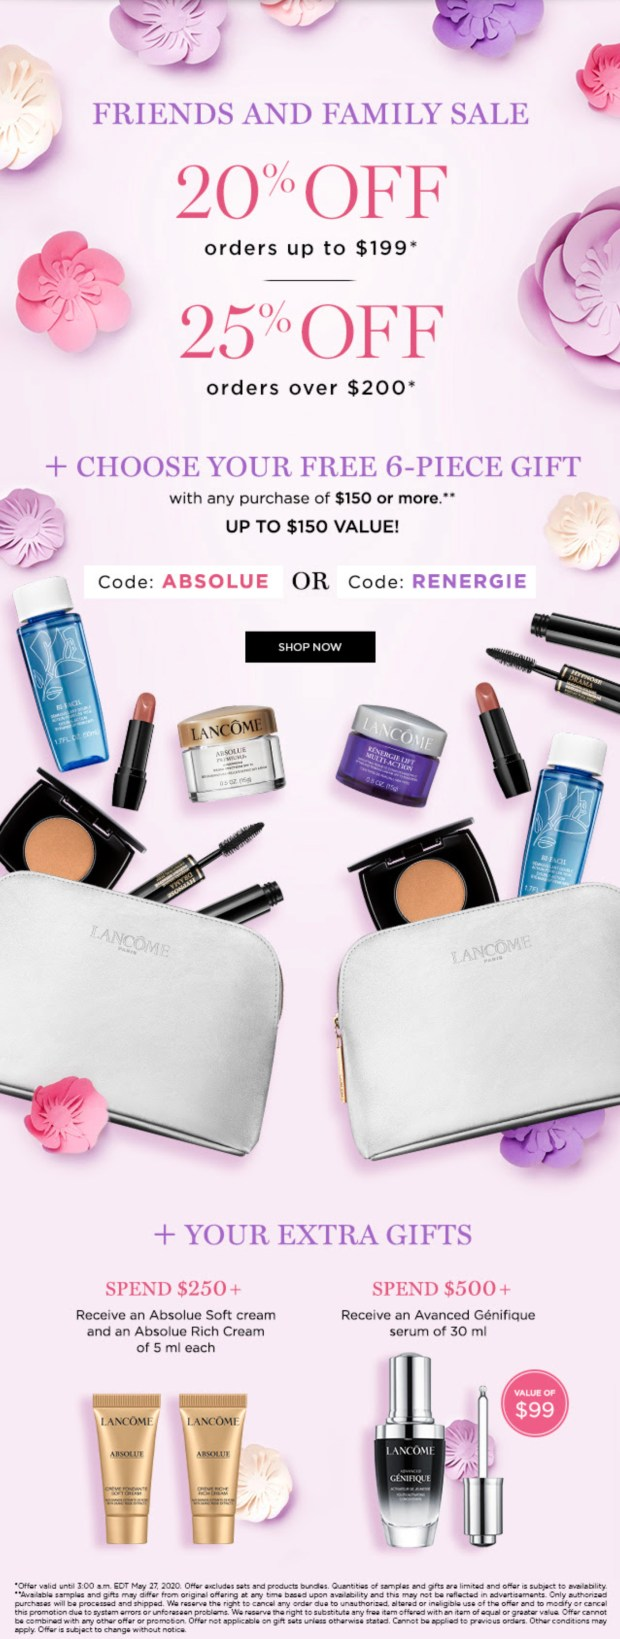 Lancome Canada Friends and Family Sale Save 20 - 25 Off Free 6-pc Gift Extra Gifts Spring 2020 Canadian Deals Promo Codes - Glossense